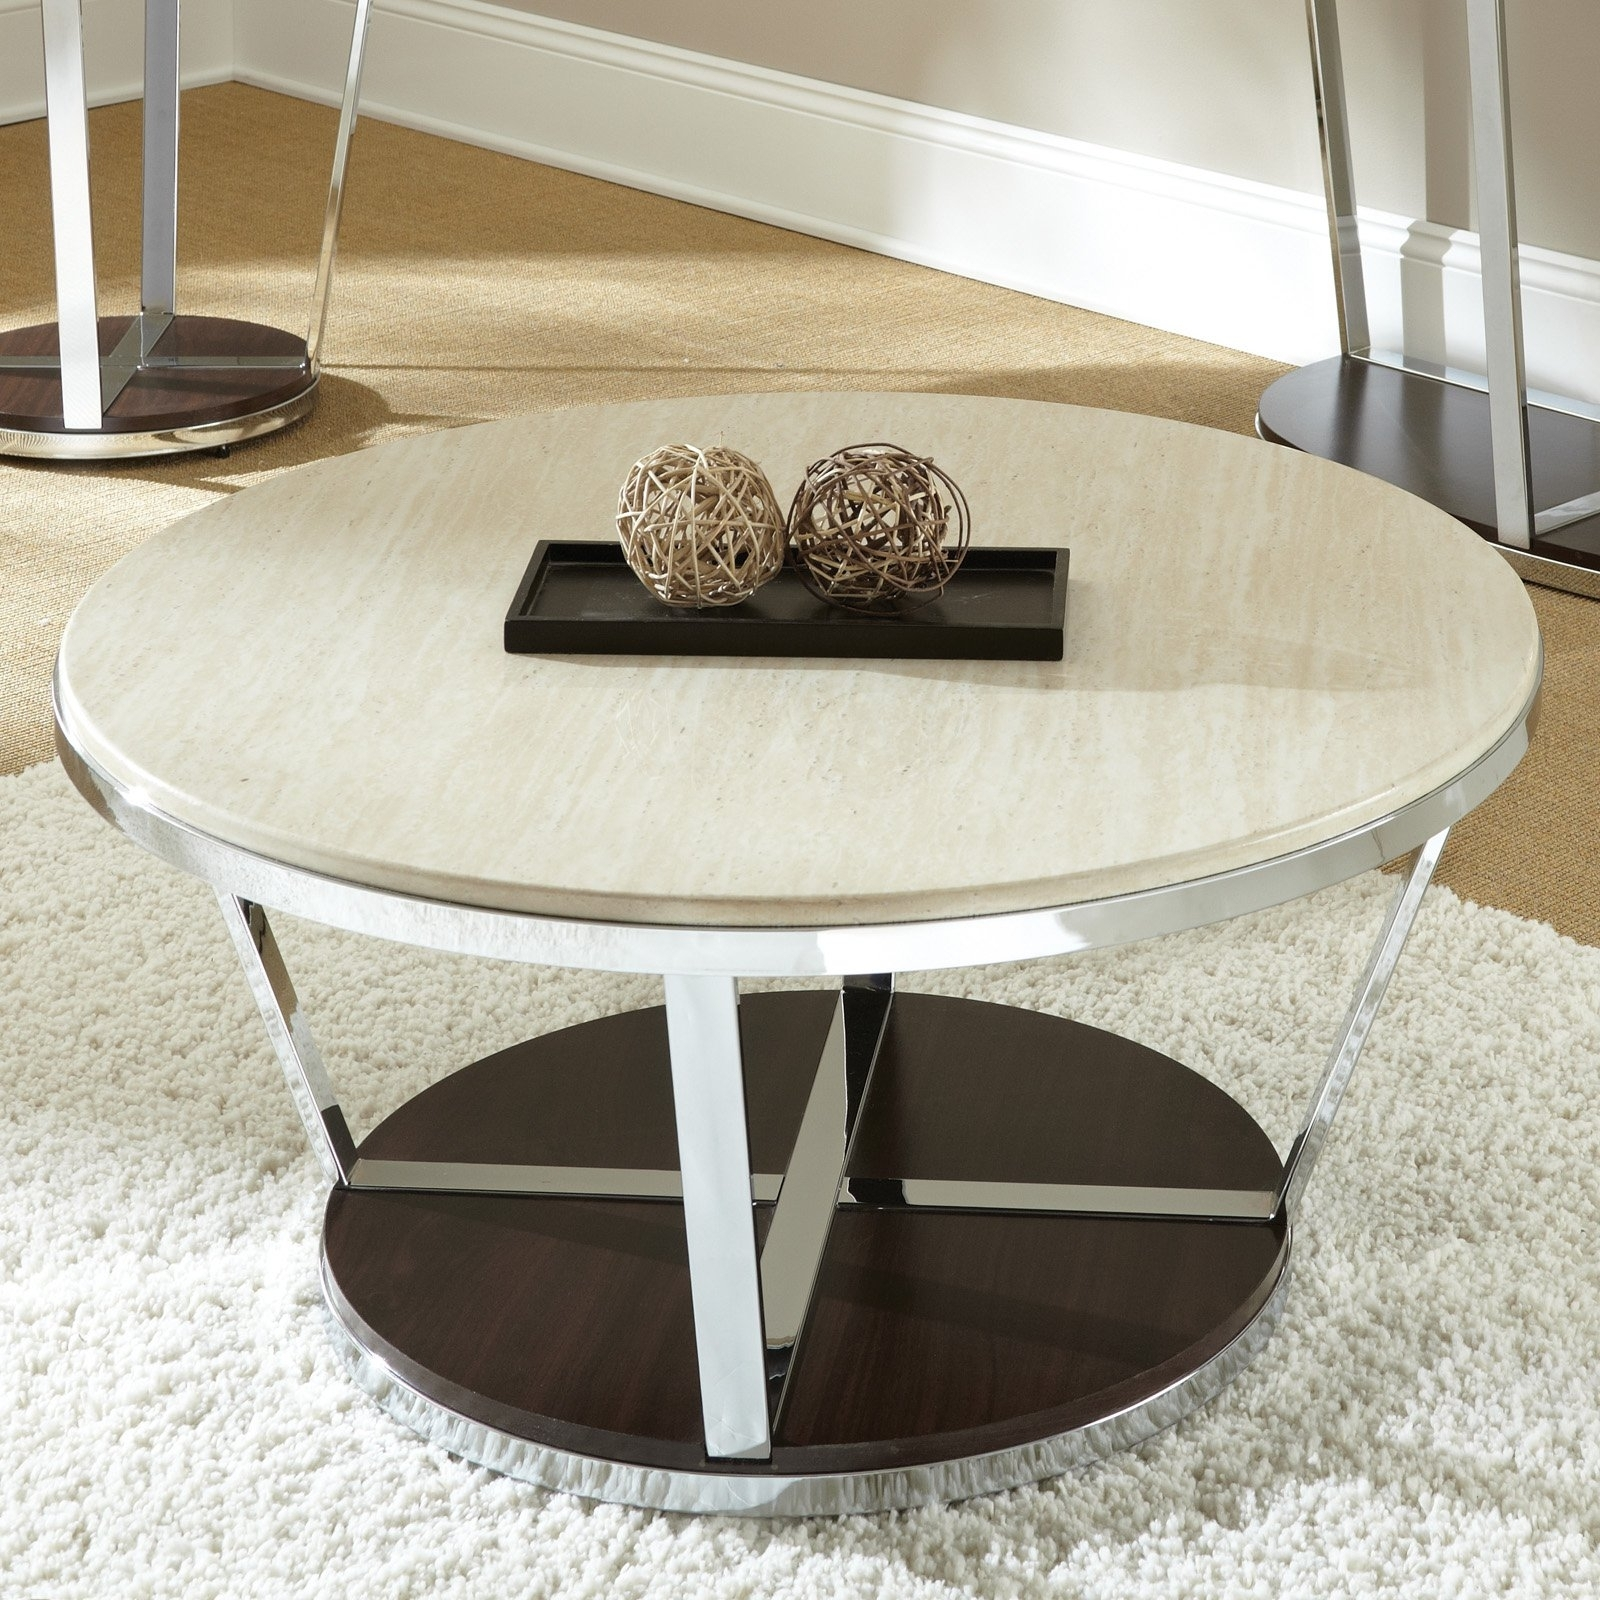 Coffee Tables Ideas Faux Marble Top Coffee Table Design Dry Erase With Widely Used Stone Top Coffee Tables (View 6 of 20)